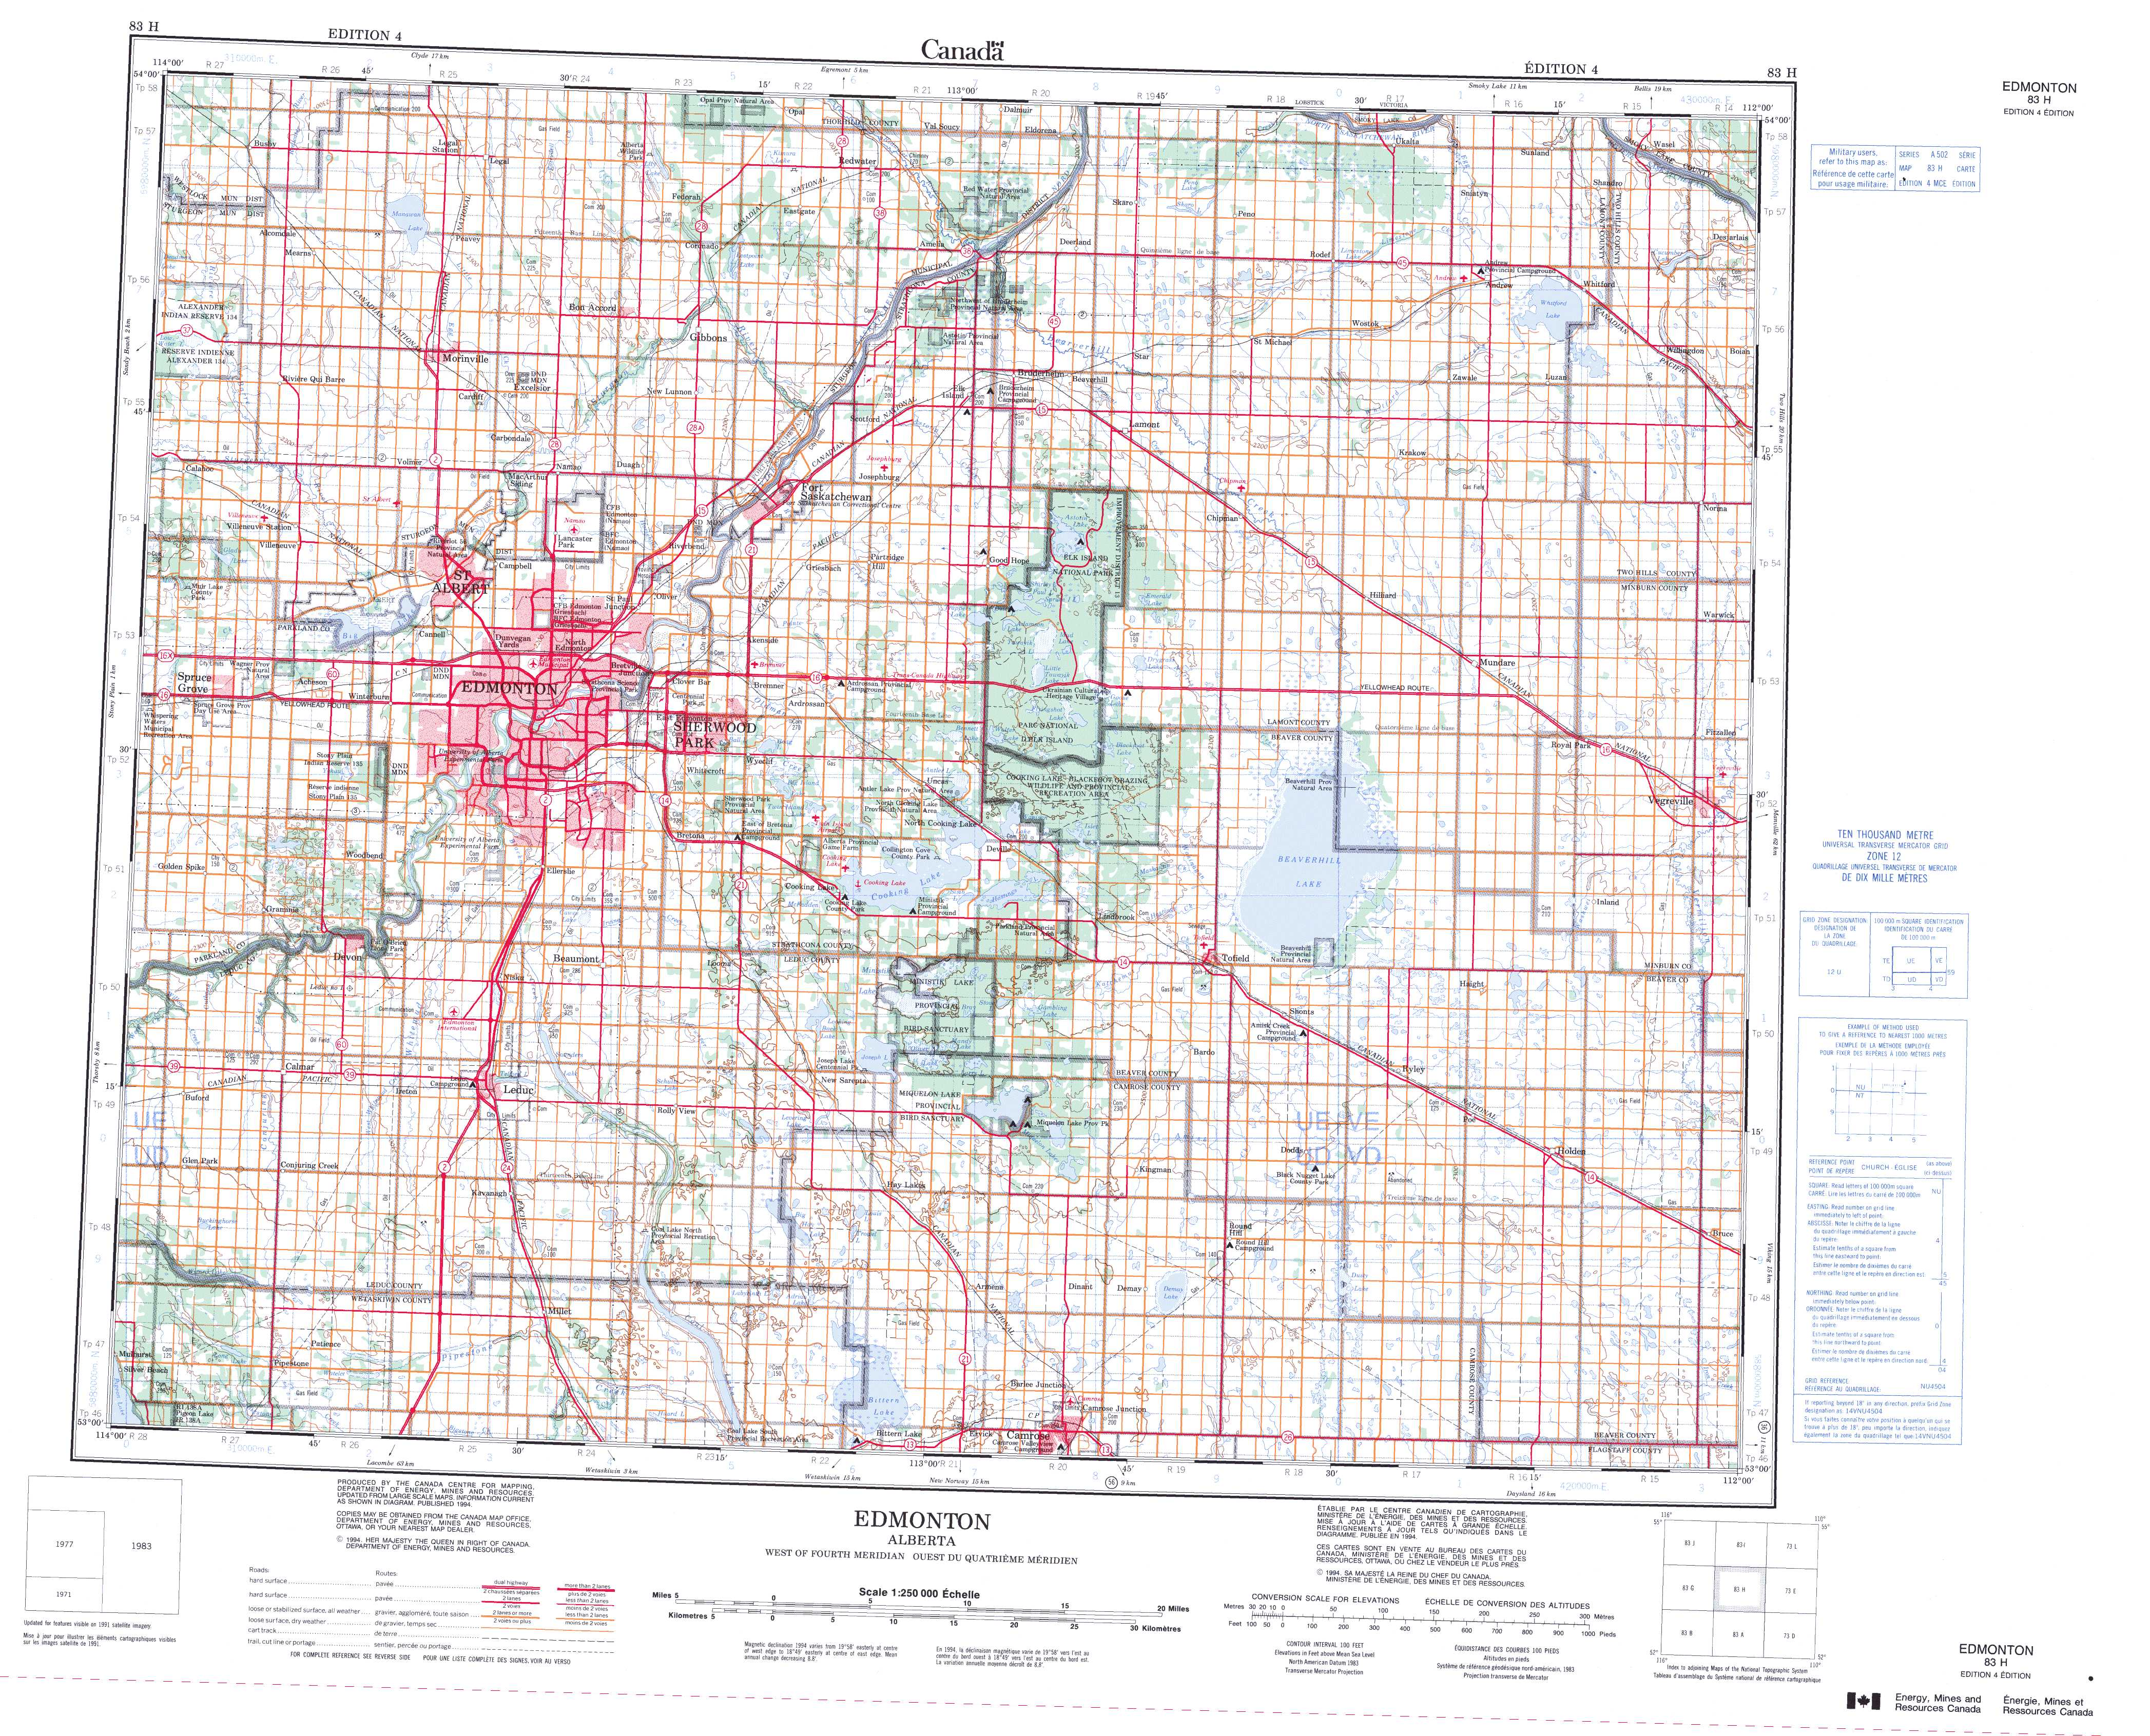 Map Of Edmonton Ab Printable Topographic Map of Edmonton 083H, AB Map Of Edmonton Ab